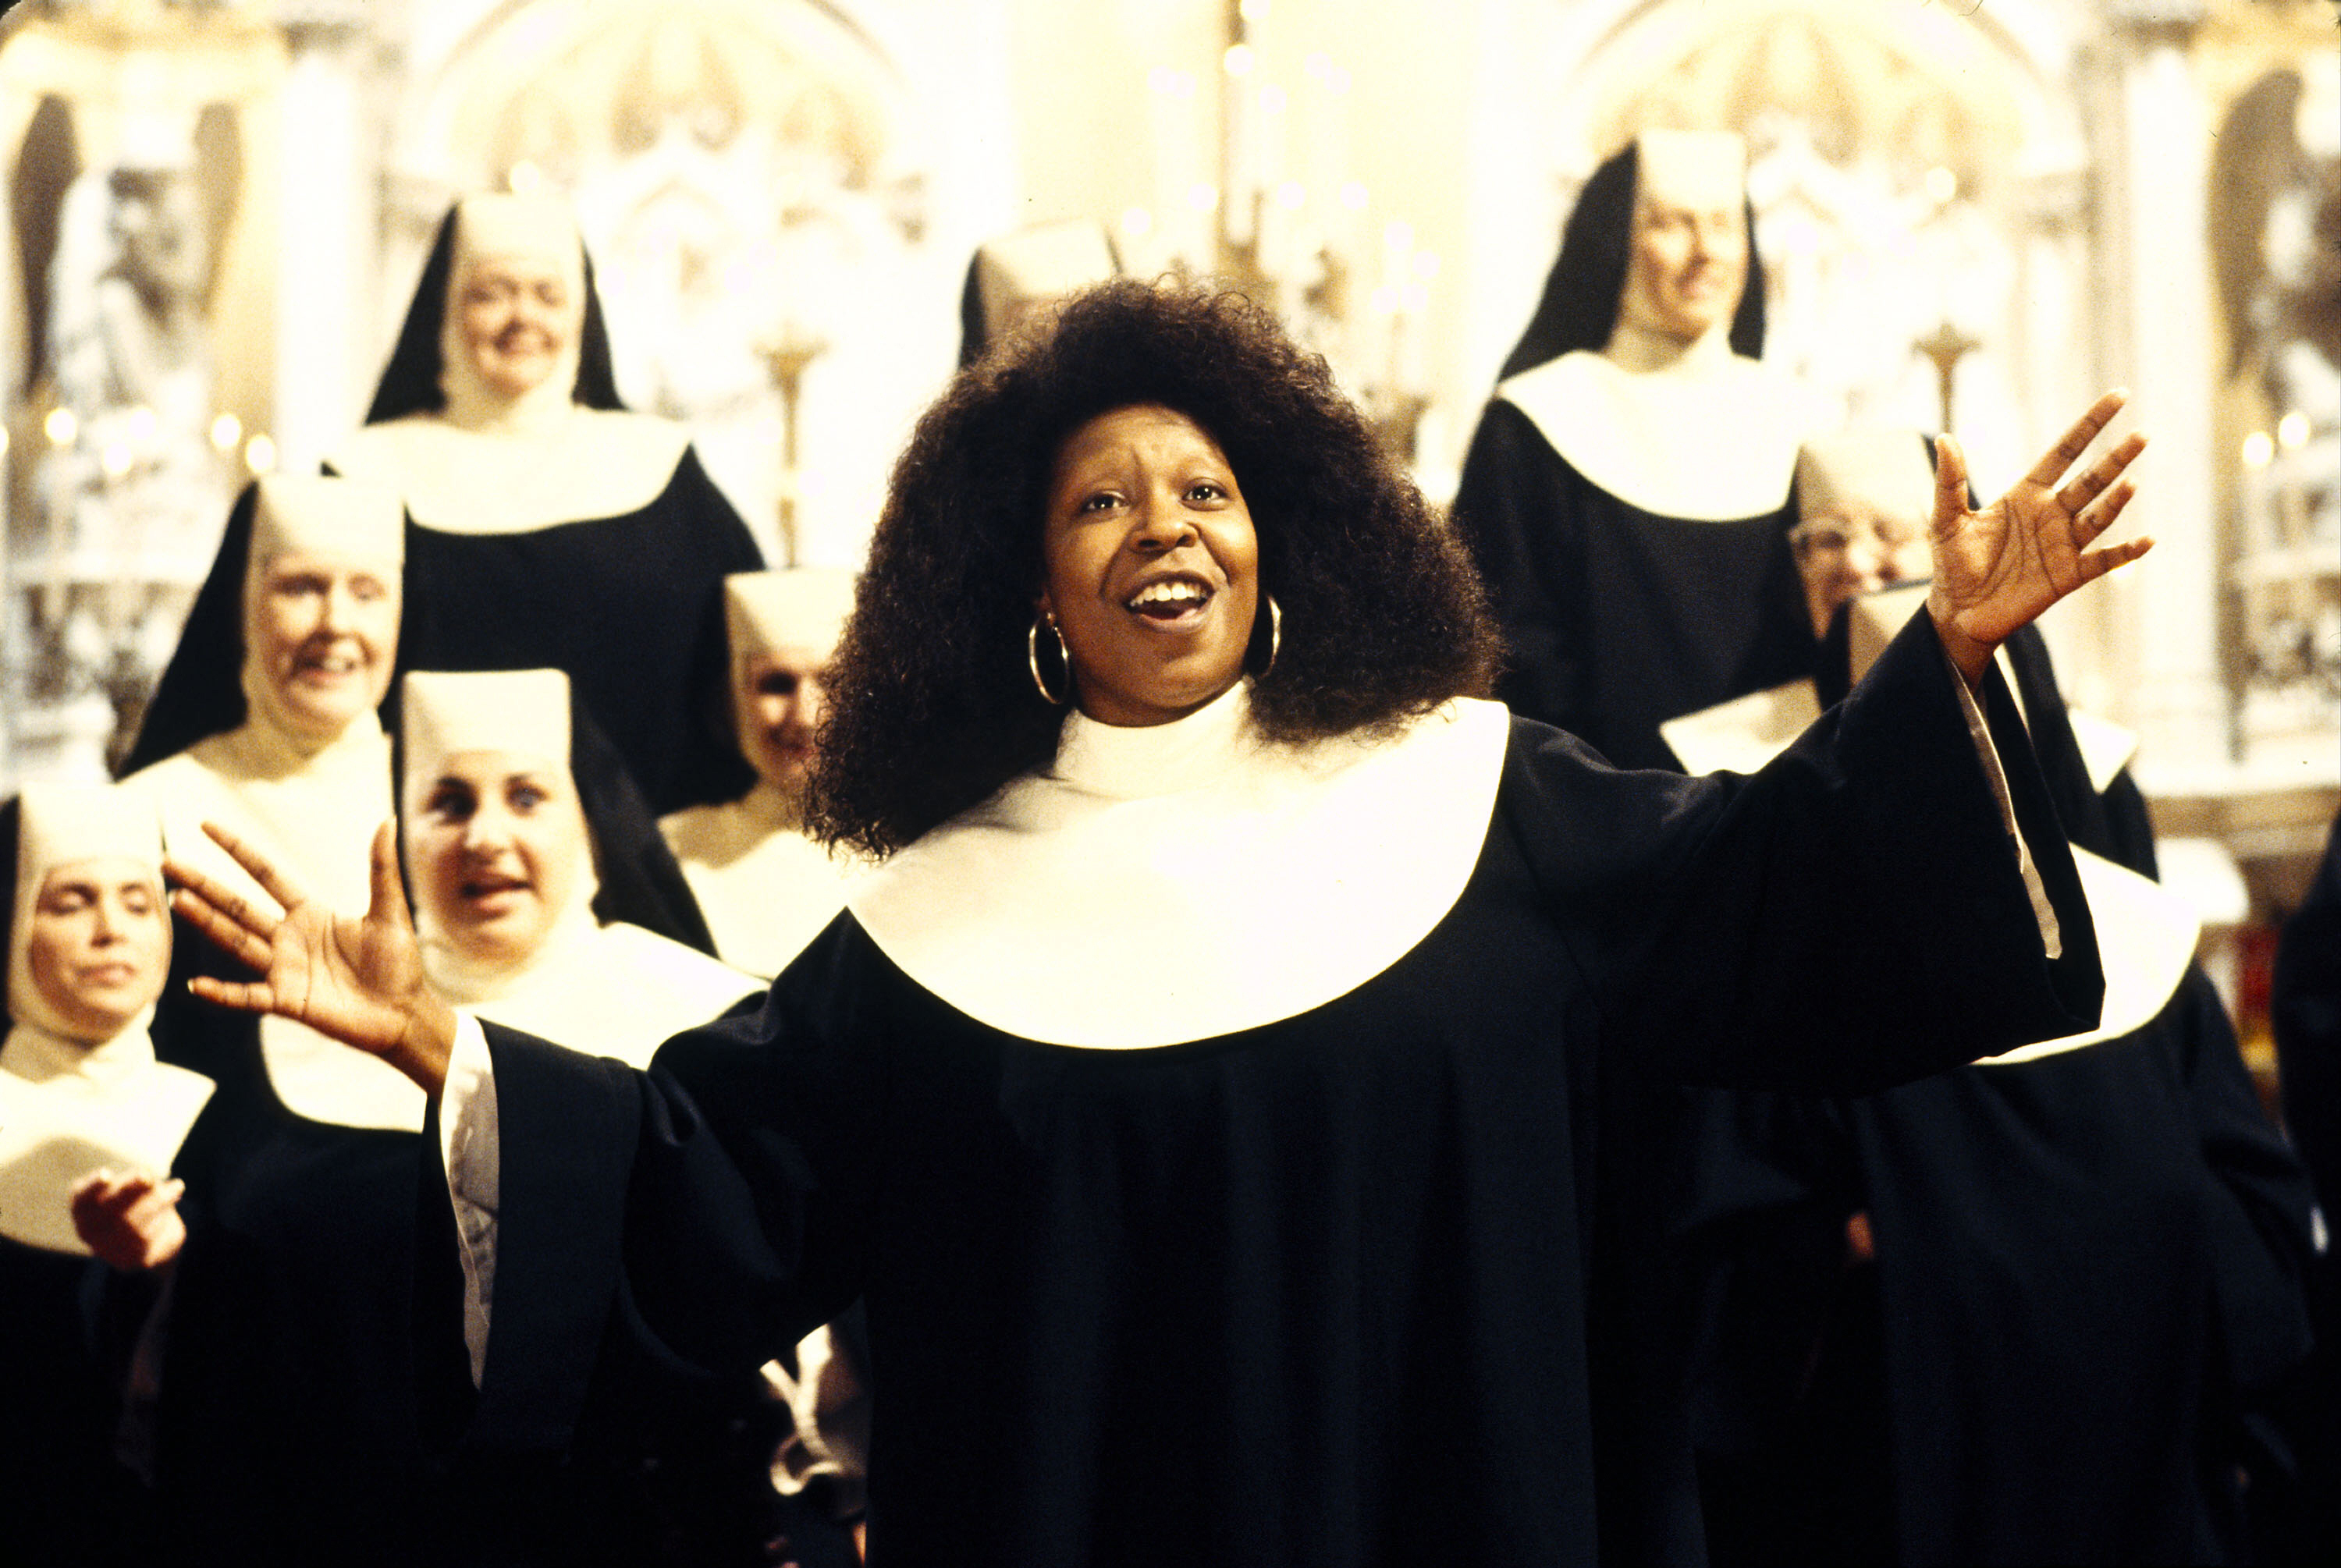 Sister Act (1992) Directed by Emile Ardolino                   Shown: Whoopie Goldberg